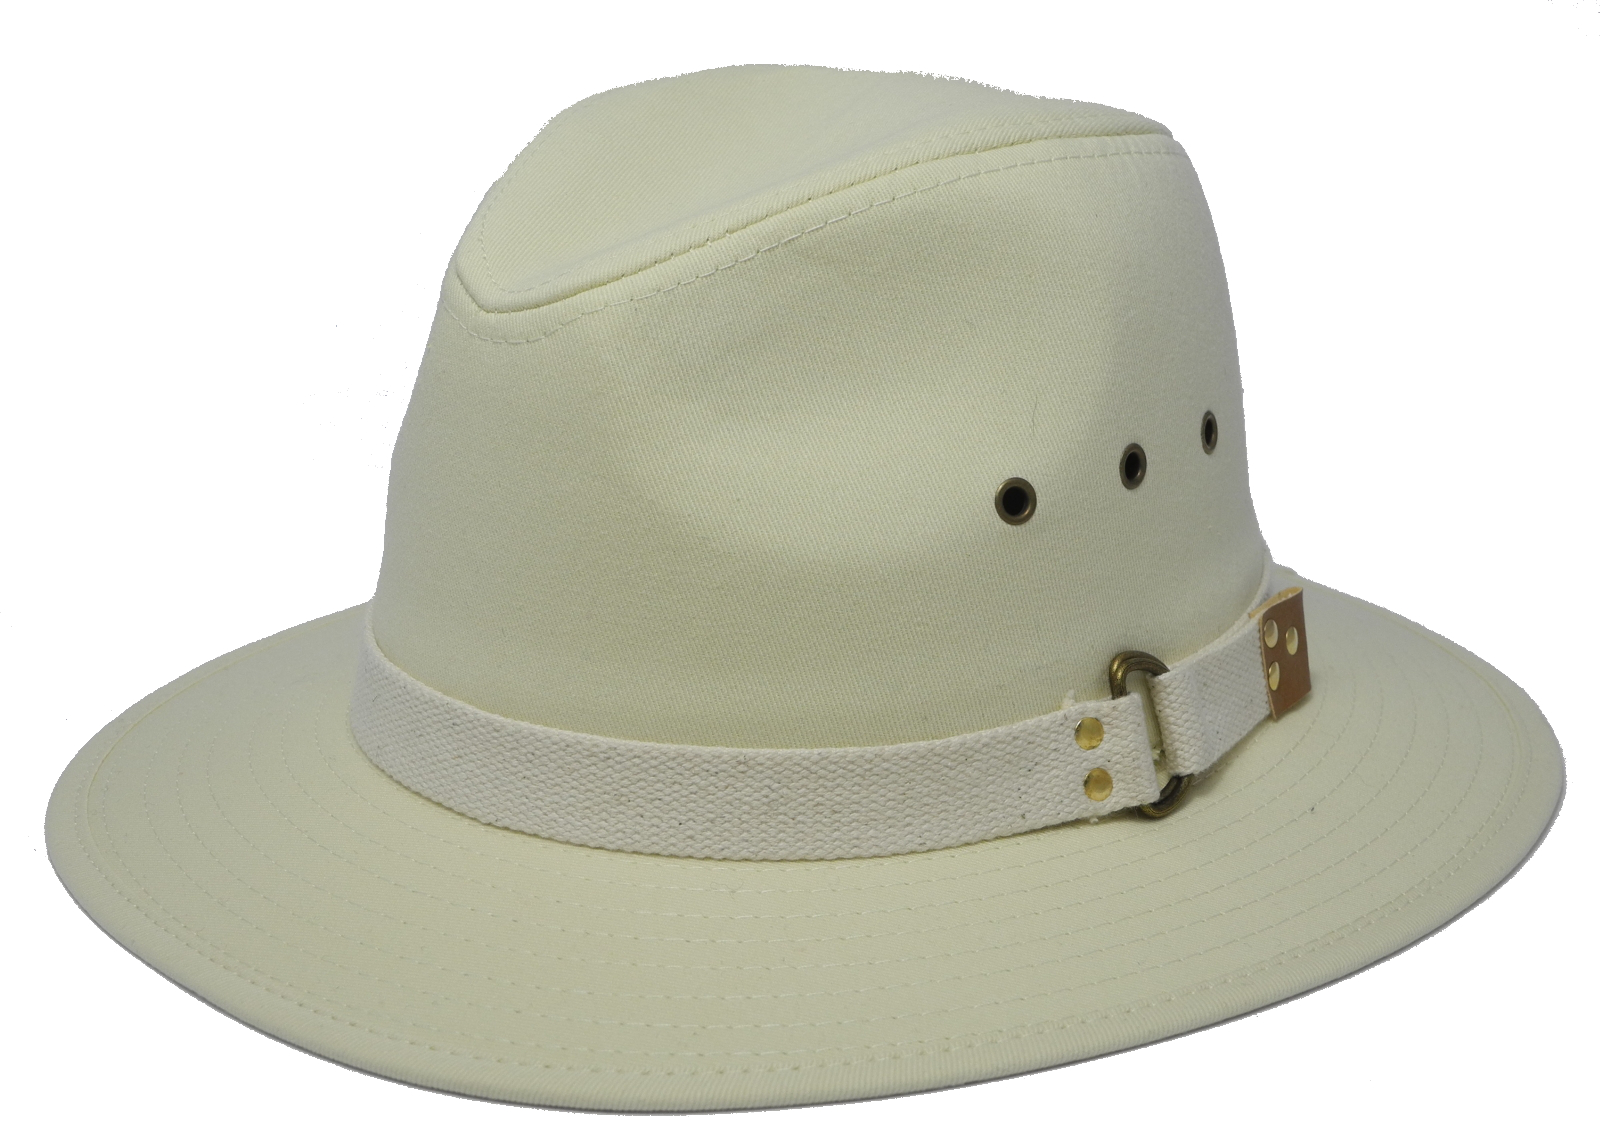 Shop for and buy mens summer hats online at Macy's. Find mens summer hats at Macy's.